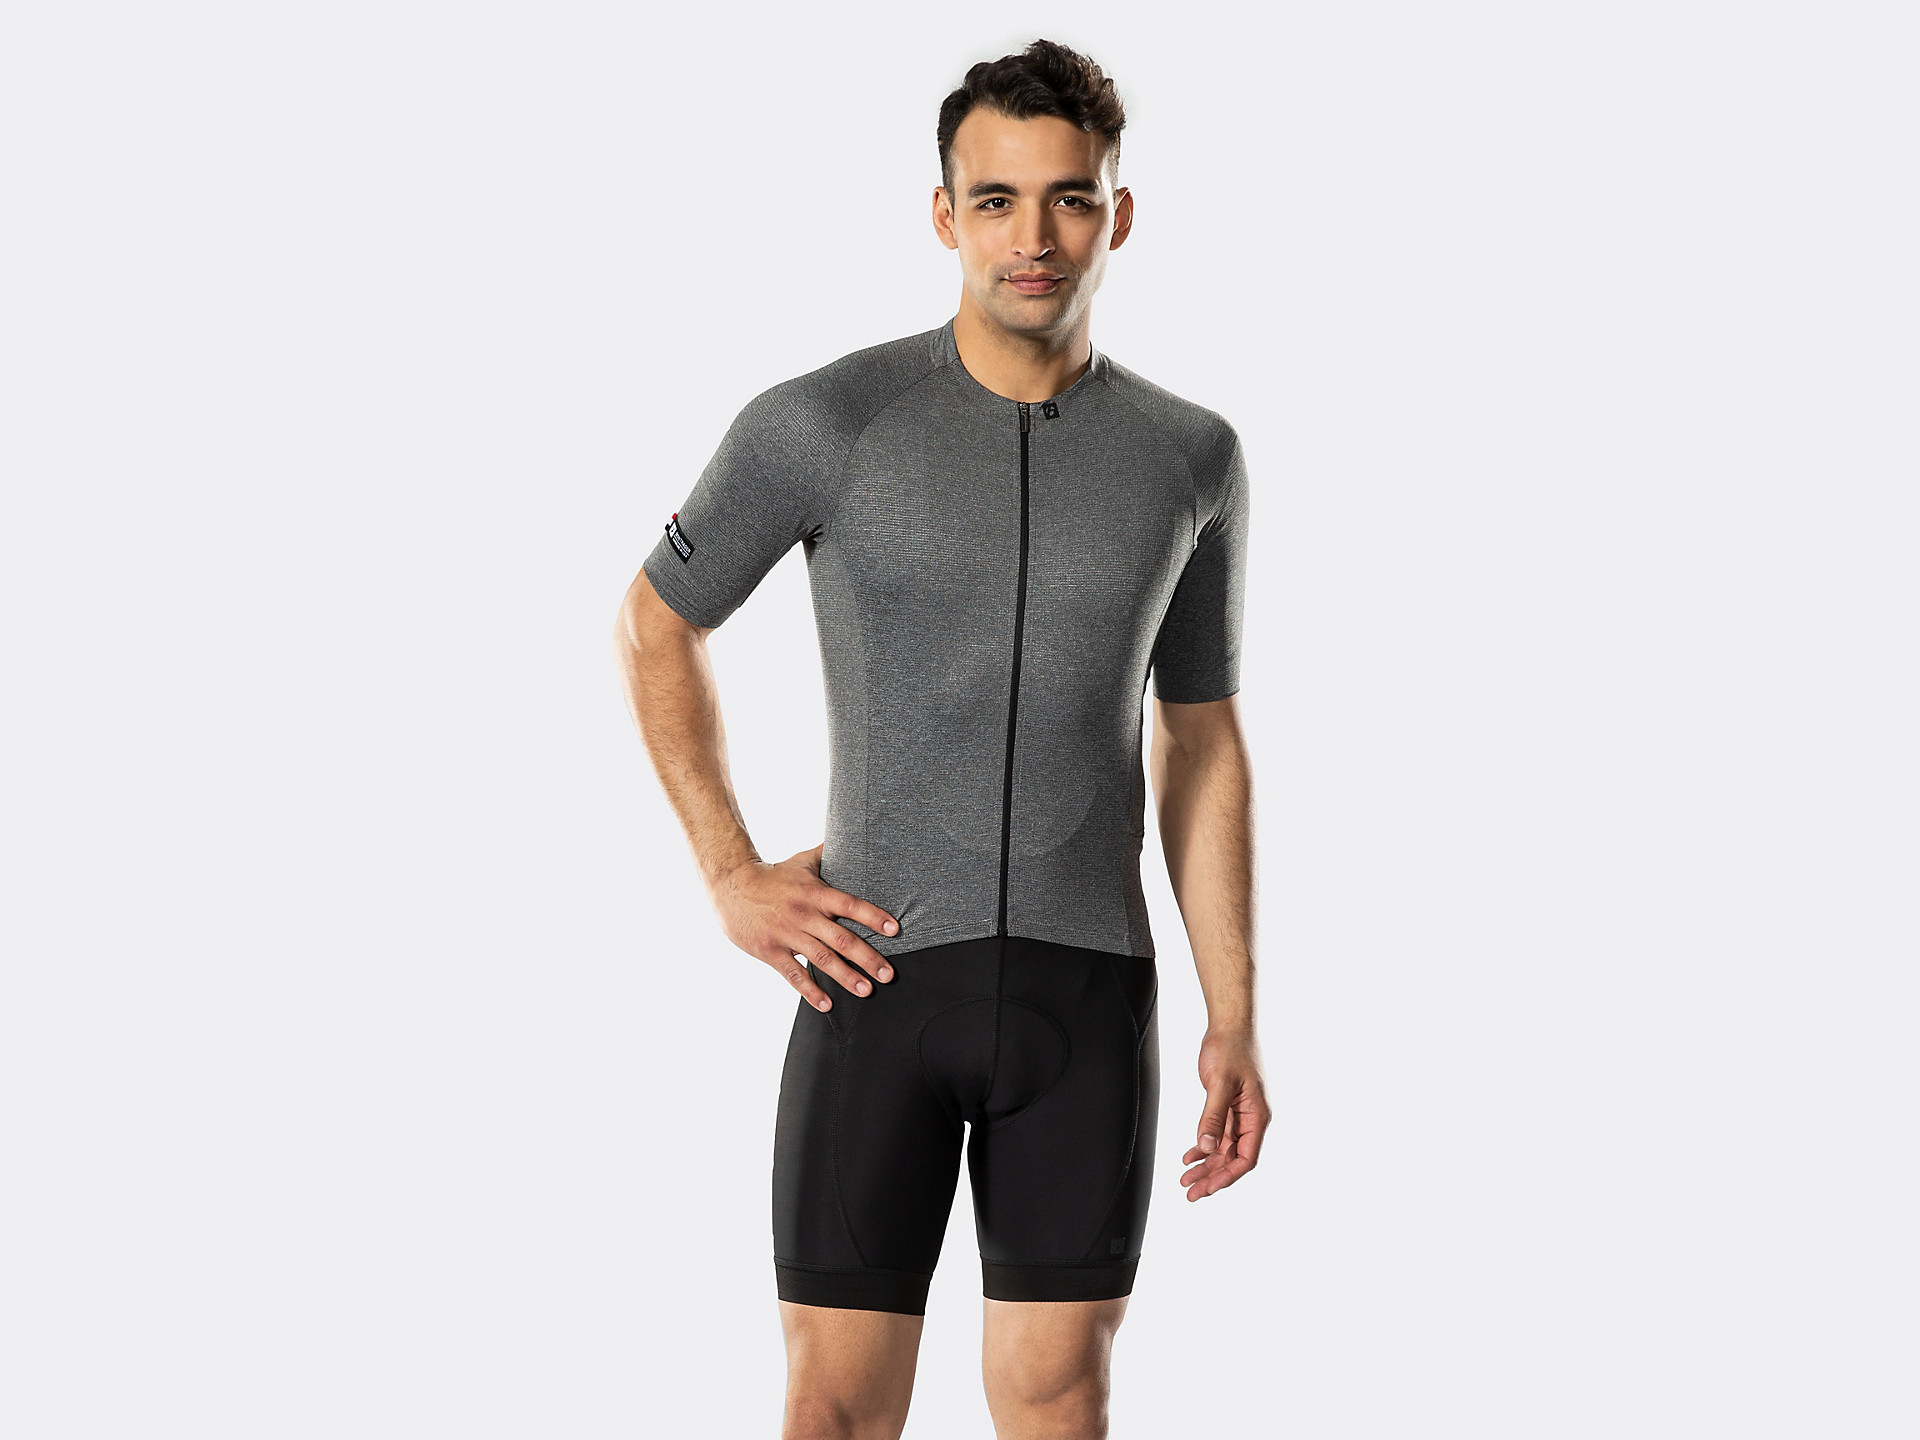 bce666352a1a0 Bontrager Circuit Cycling Short